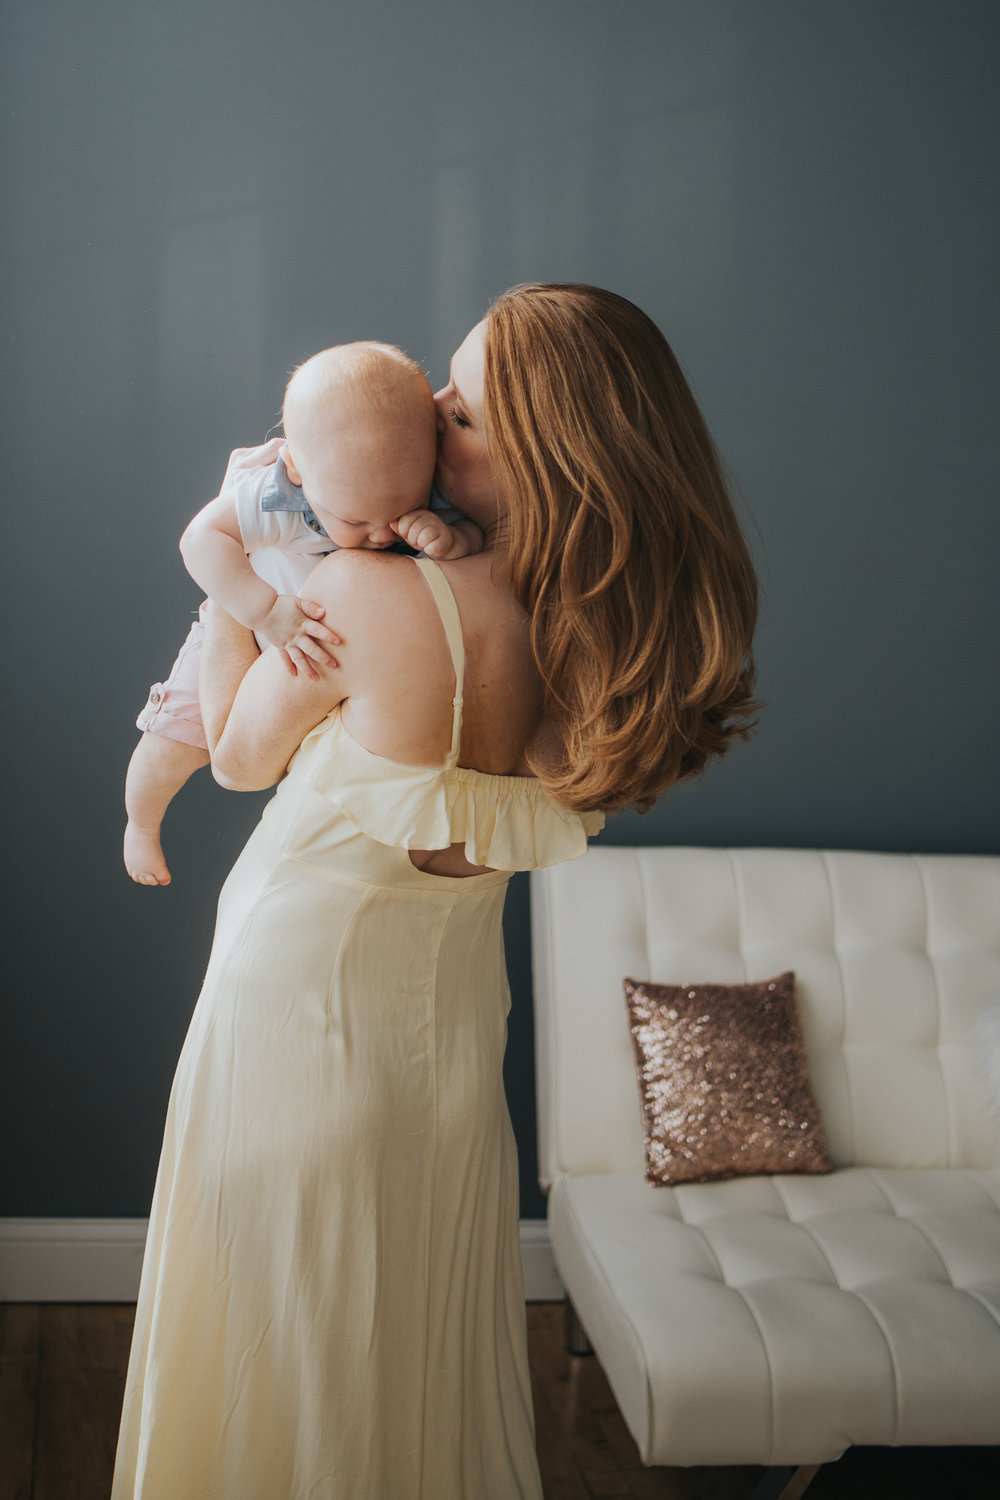 mommy in yellow dress kissing her baby boy - amg photography